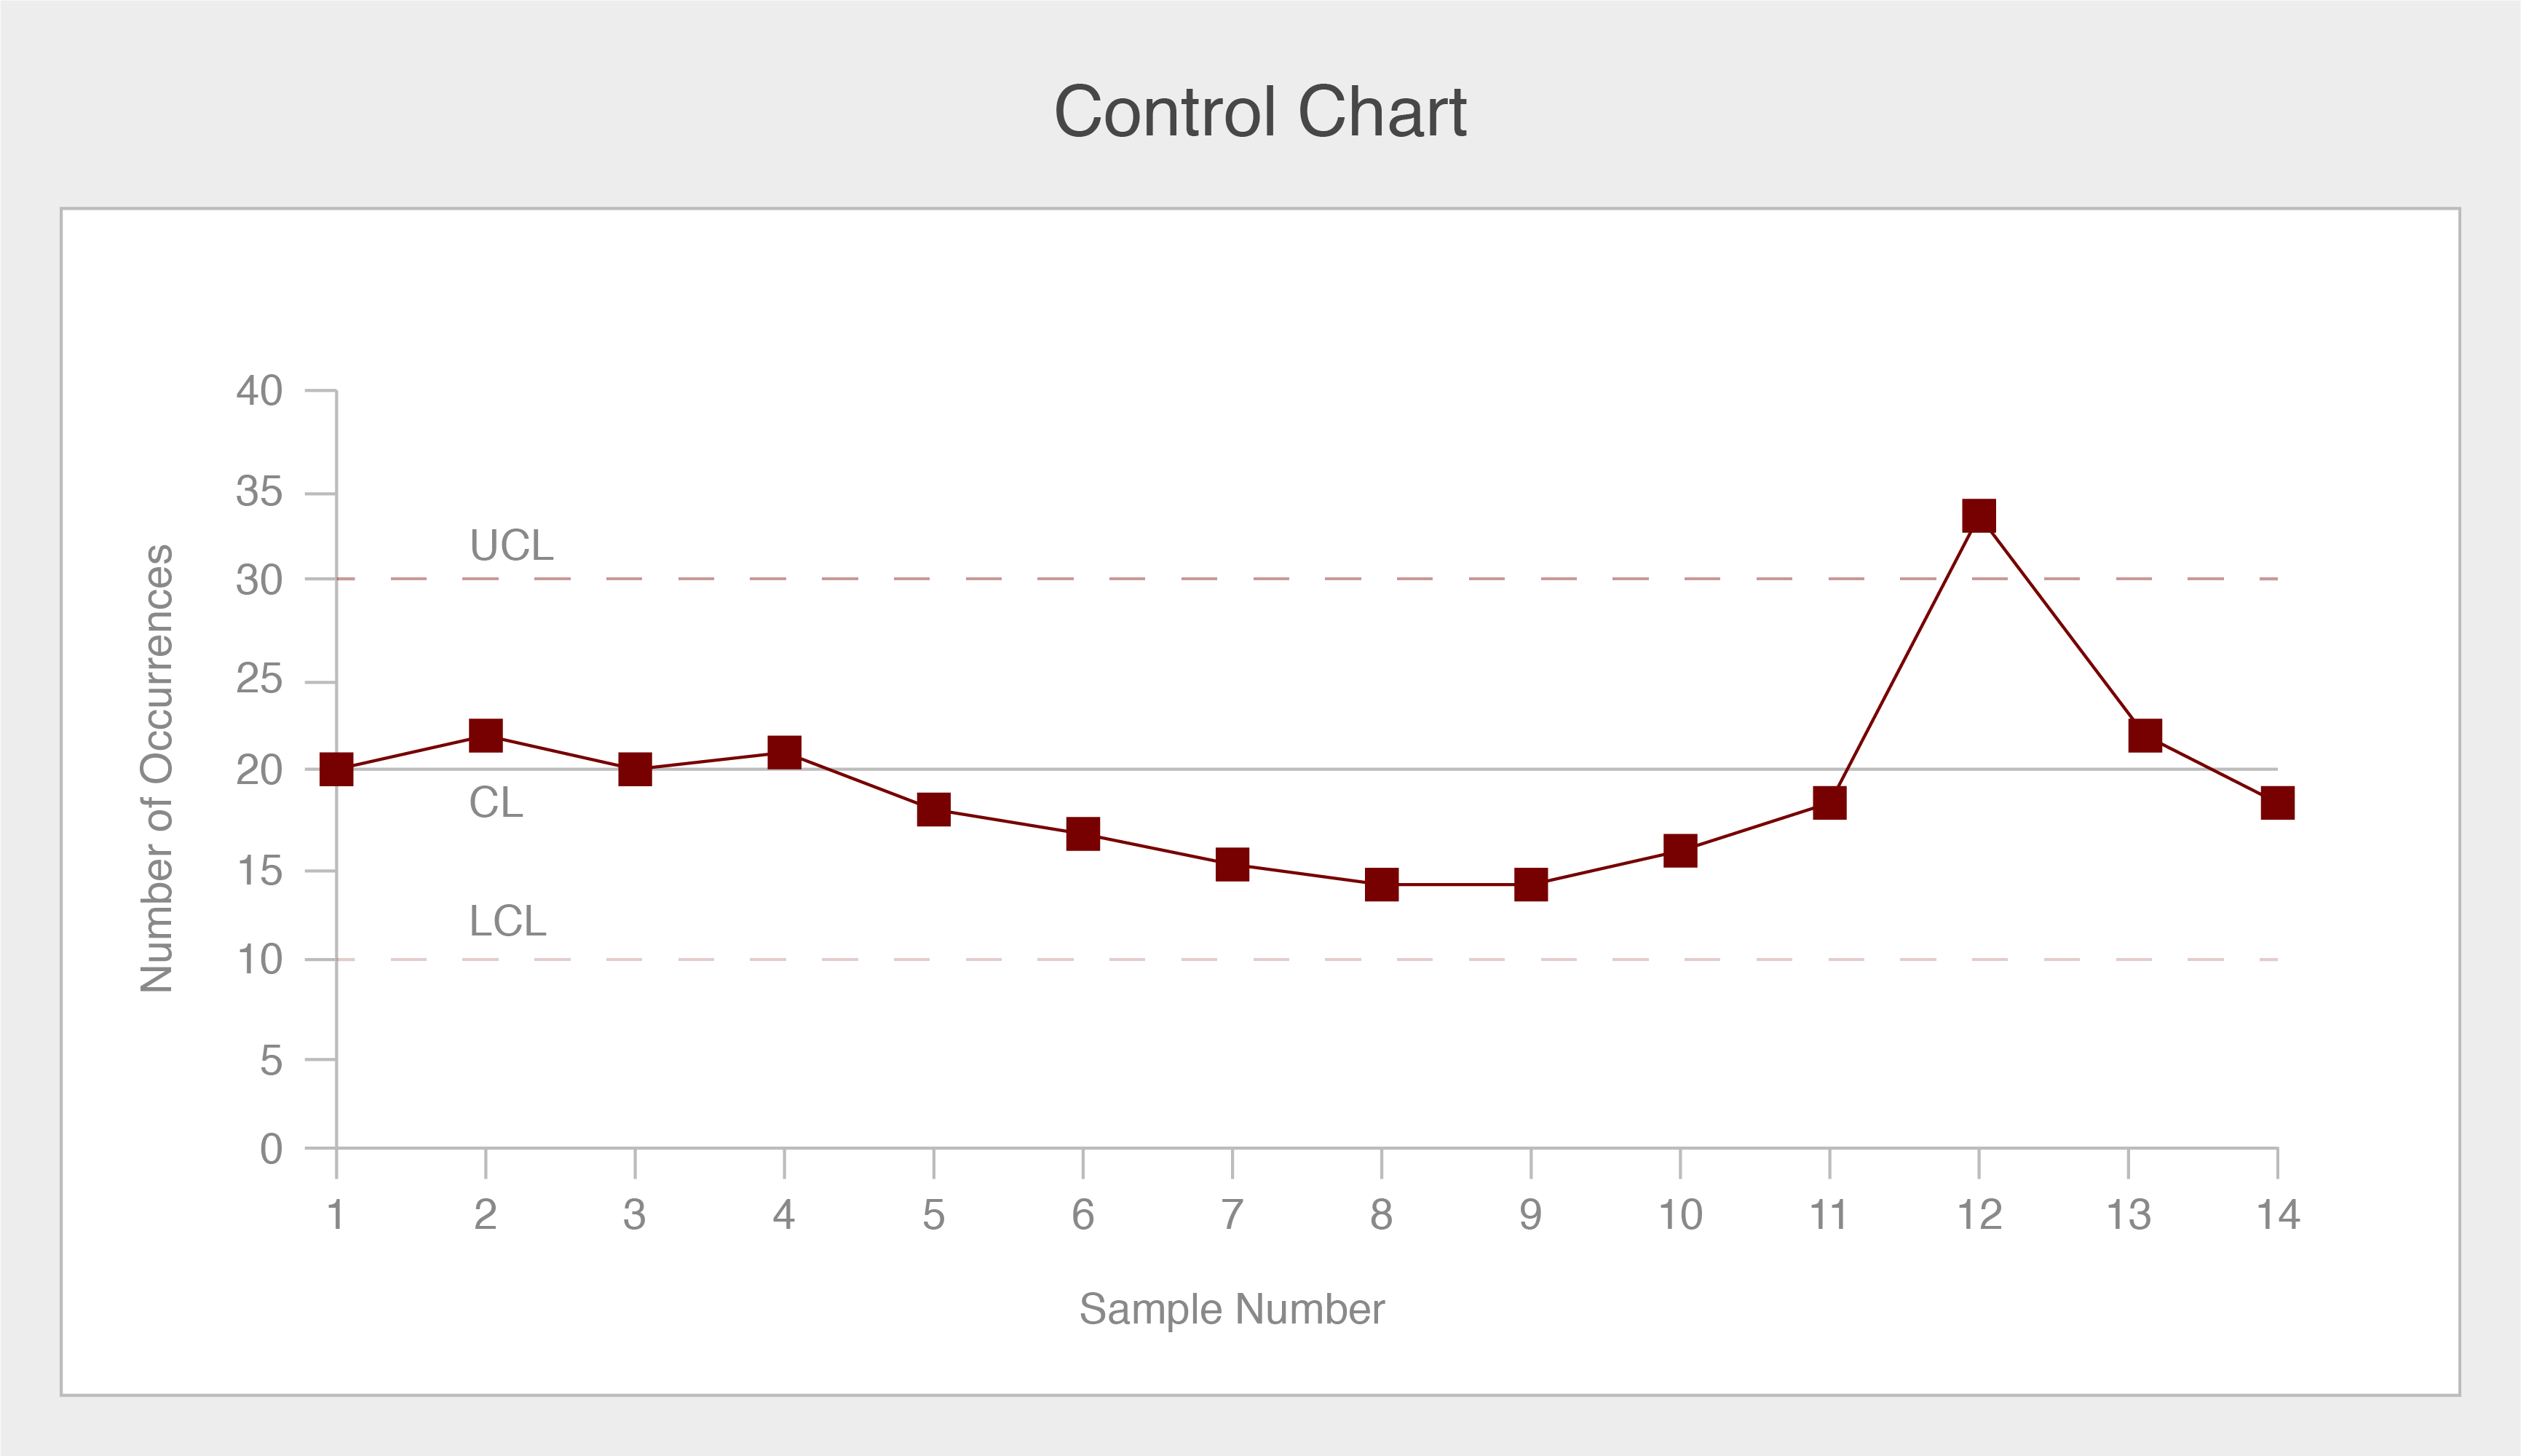 Control chart example showing a number of occurrences on the y-axis and a sample number on the x-axis.